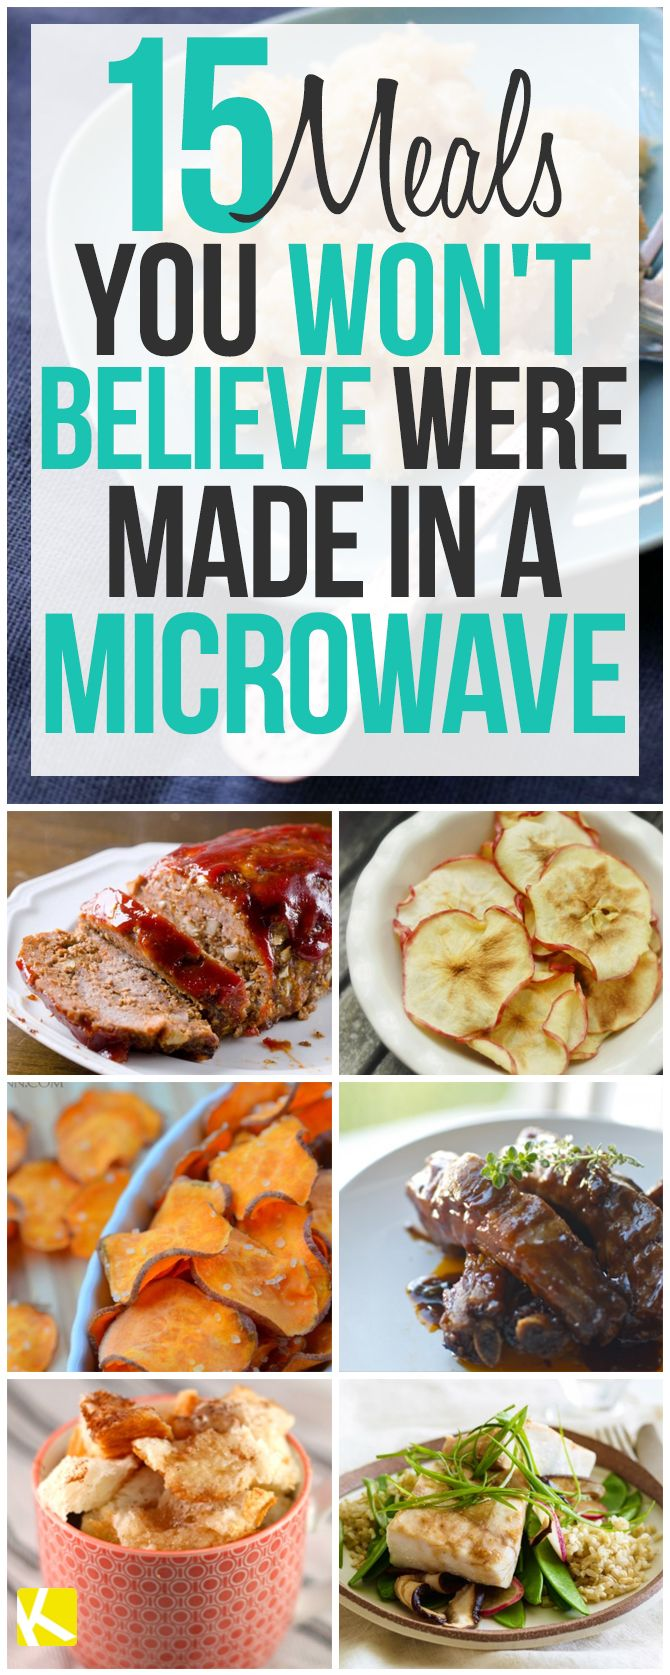 microwave recipes dinner easy meals